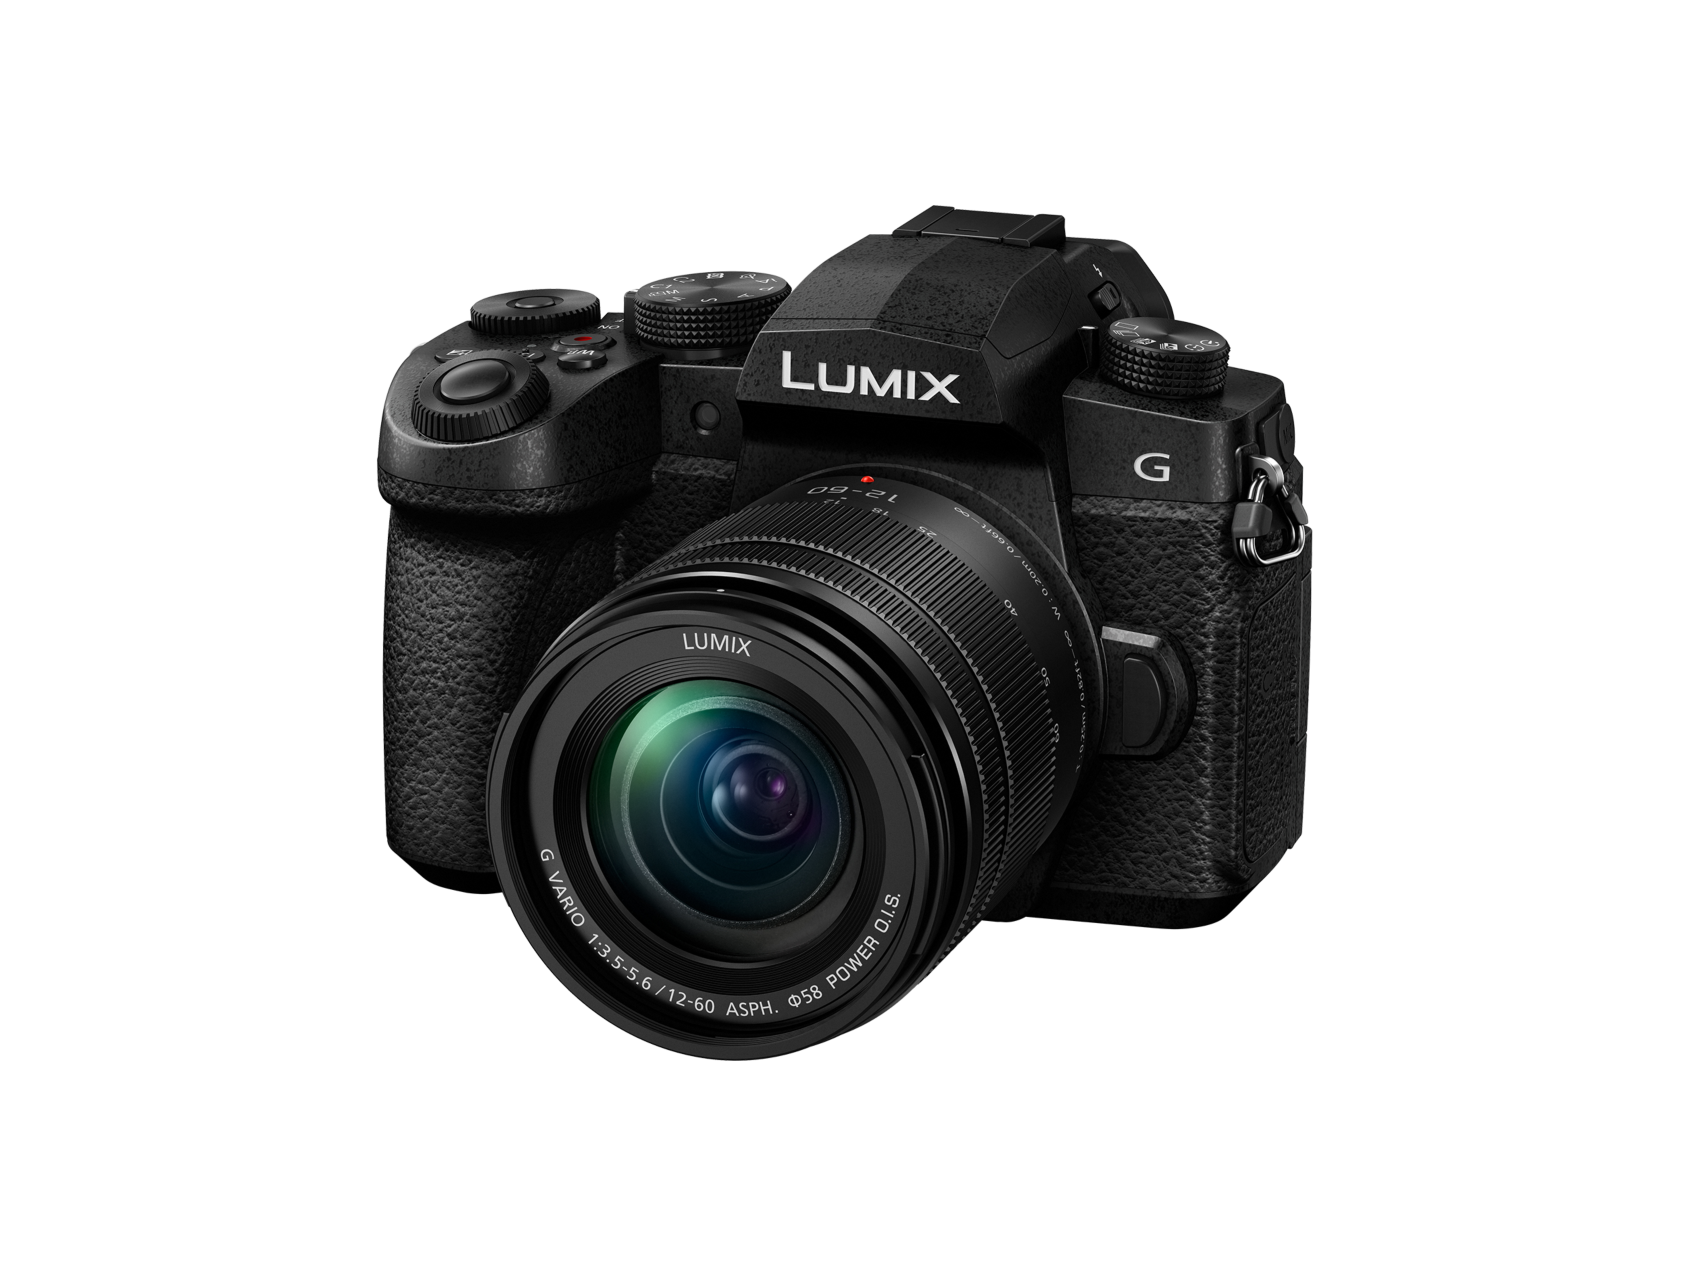 Panasonic Lumix DC-G90M Kit Vario 12-60mm f/3.5-5.6